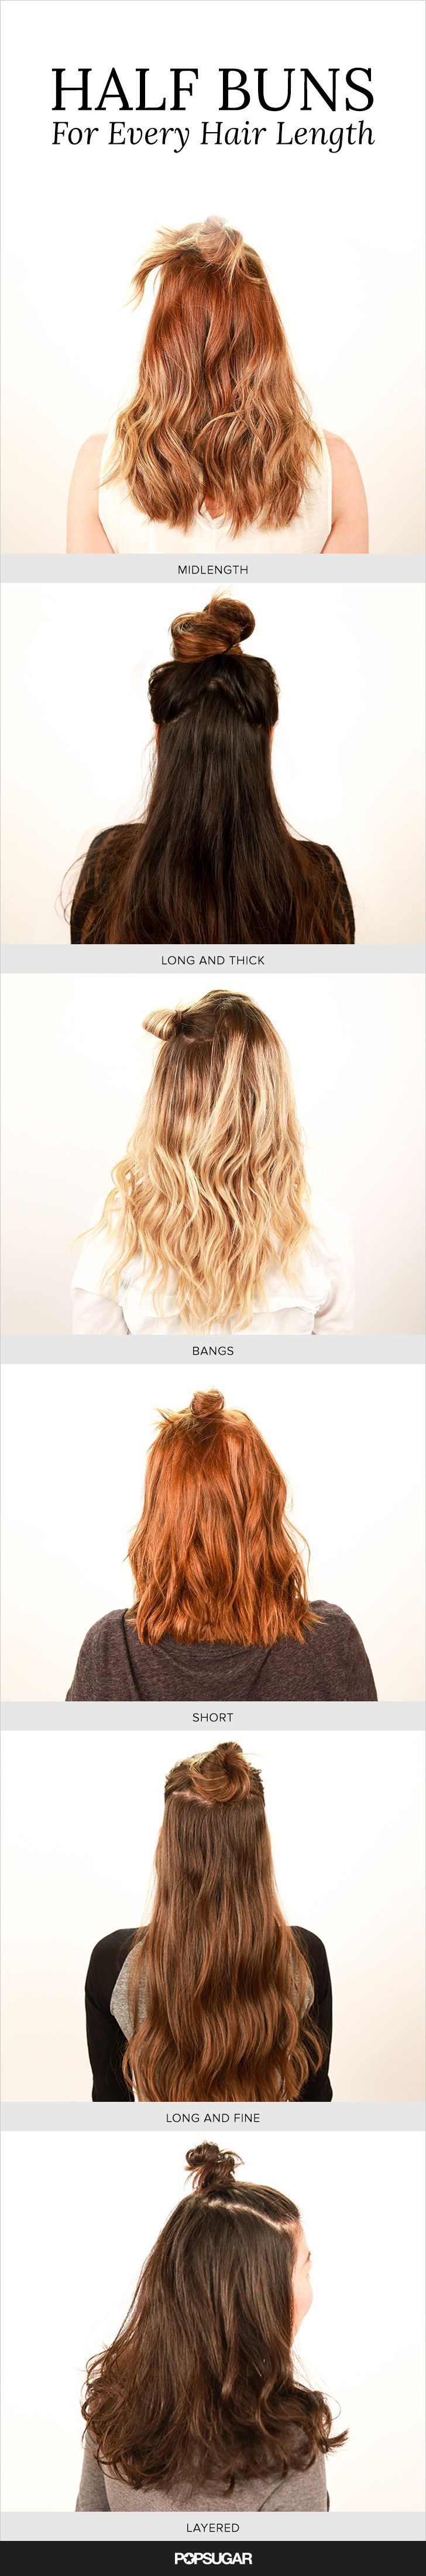 Master this season's hottest hair trend: the half bun! This half-up, half-down hairstyle works for nearly any occasion.